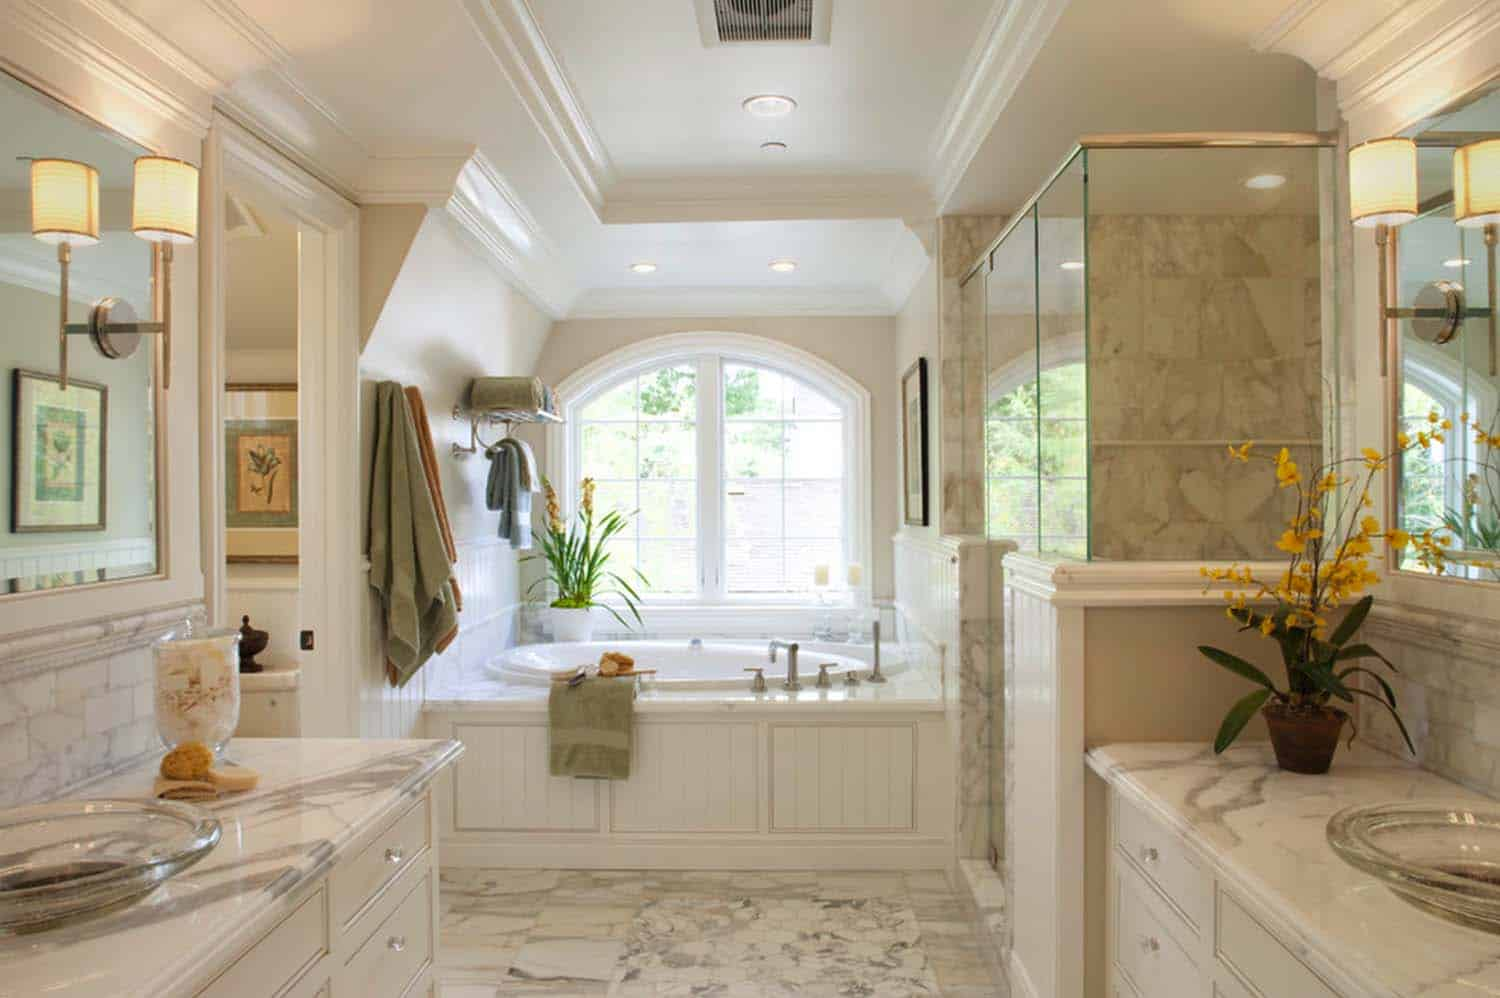 Traditional Bathroom Design Ideas-40-1 Kindesign